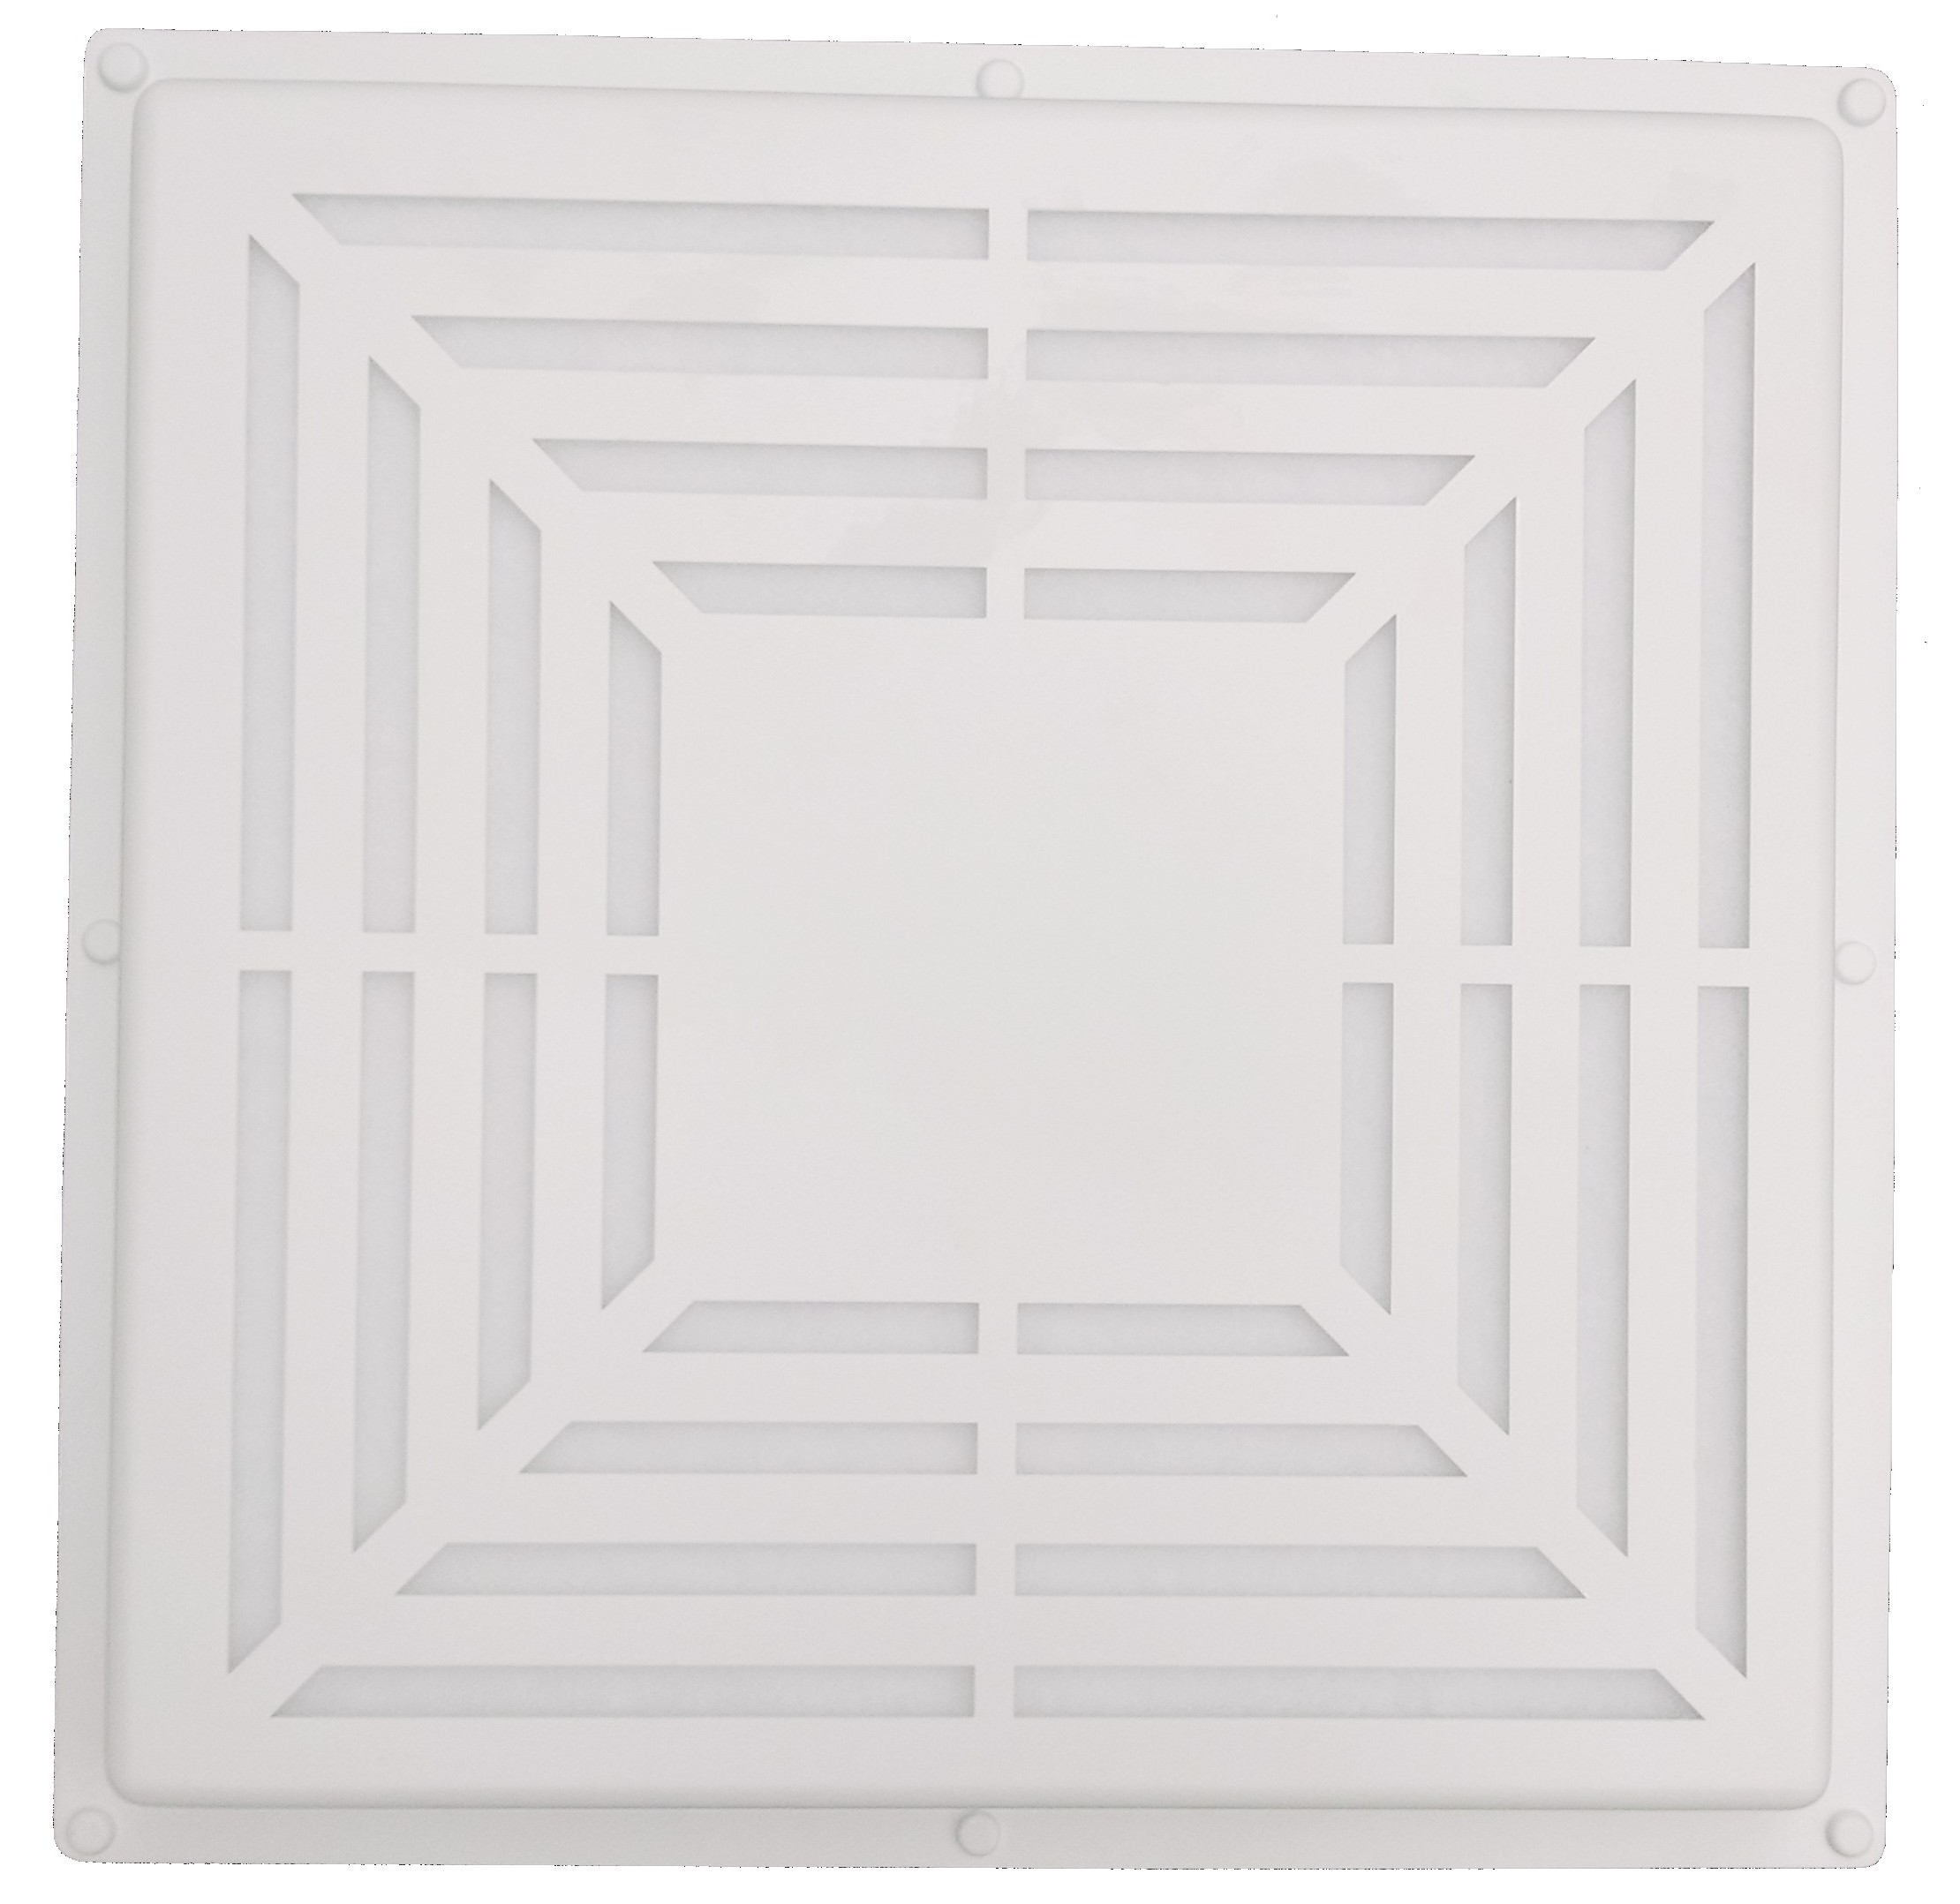 Vent Covers For Cold Drafty Vents Registers Diffusers